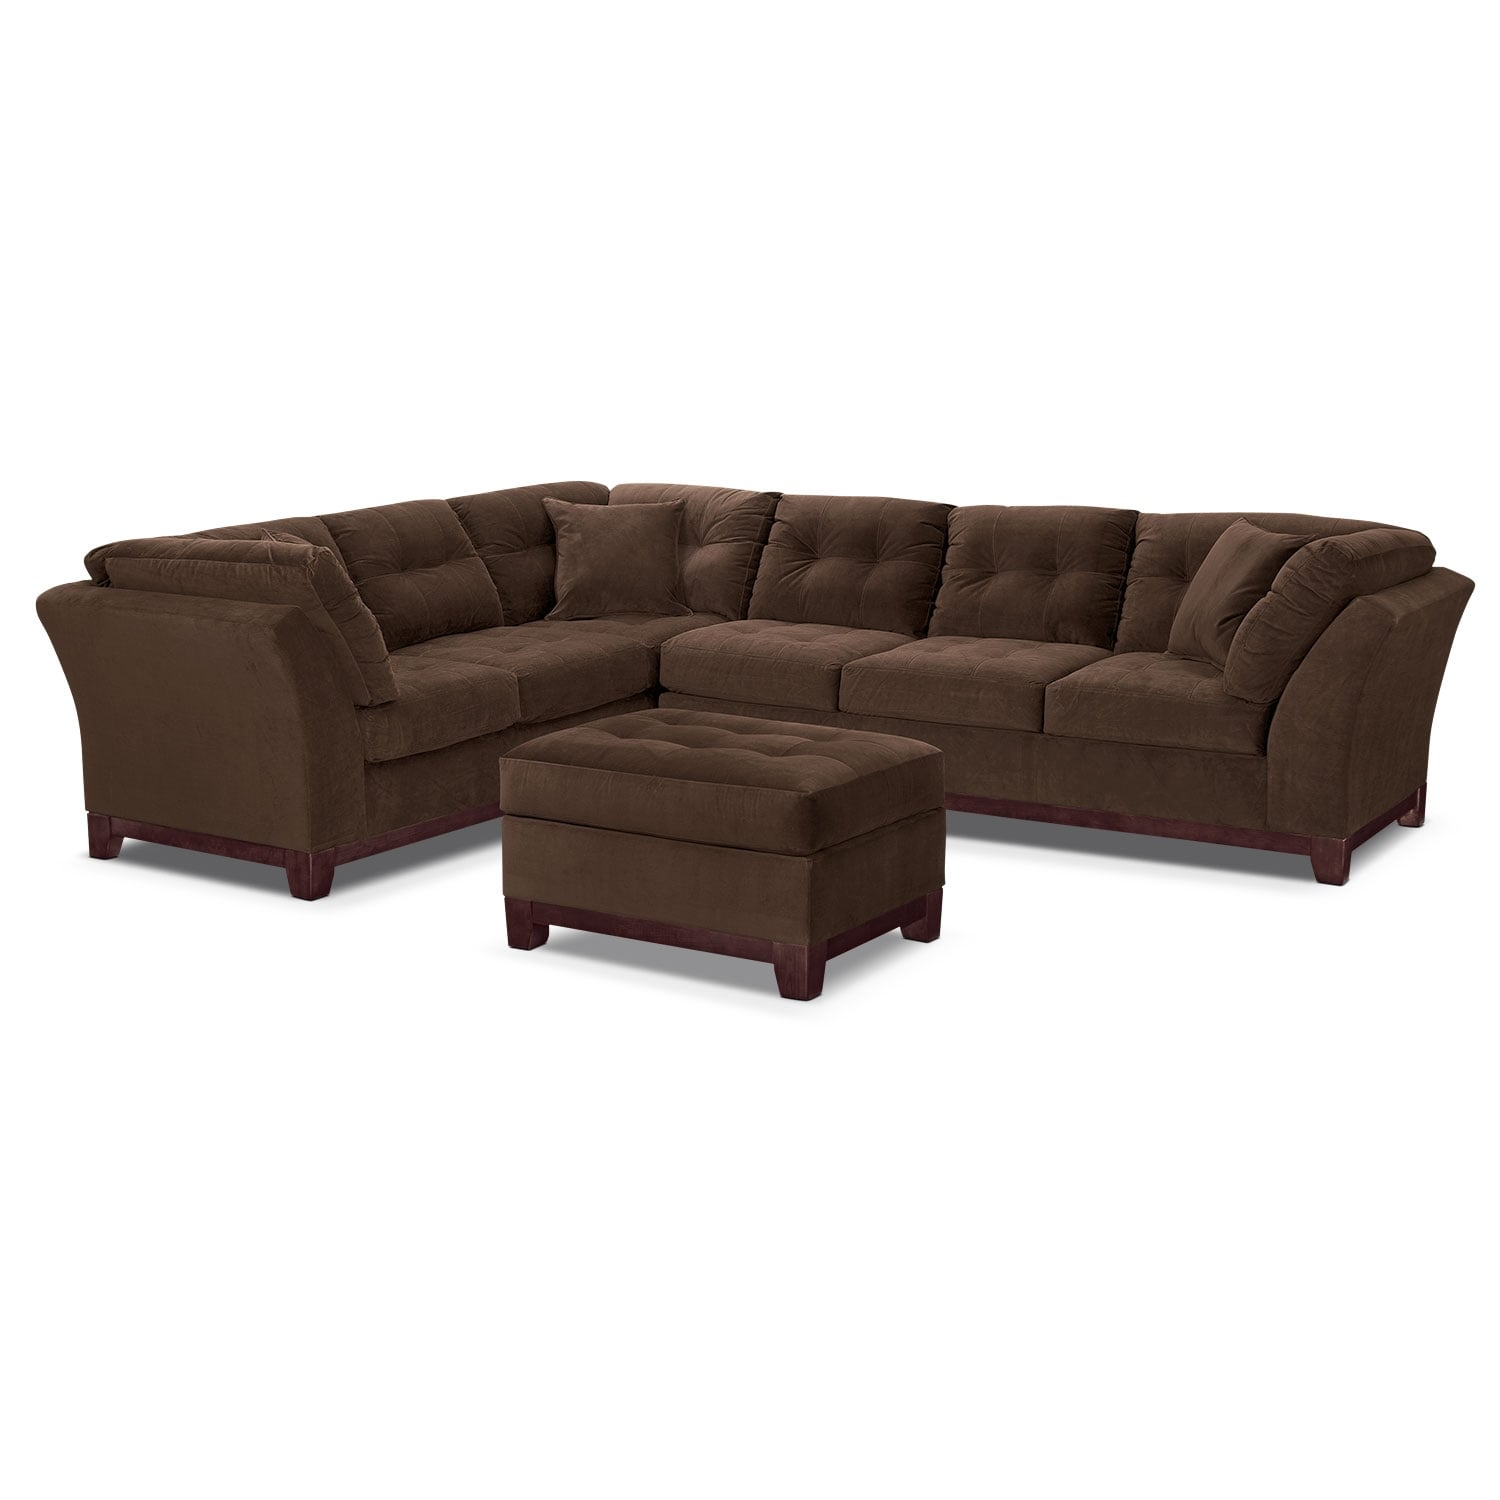 Solace Chocolate II 2 Pc. Sectional and Ottoman